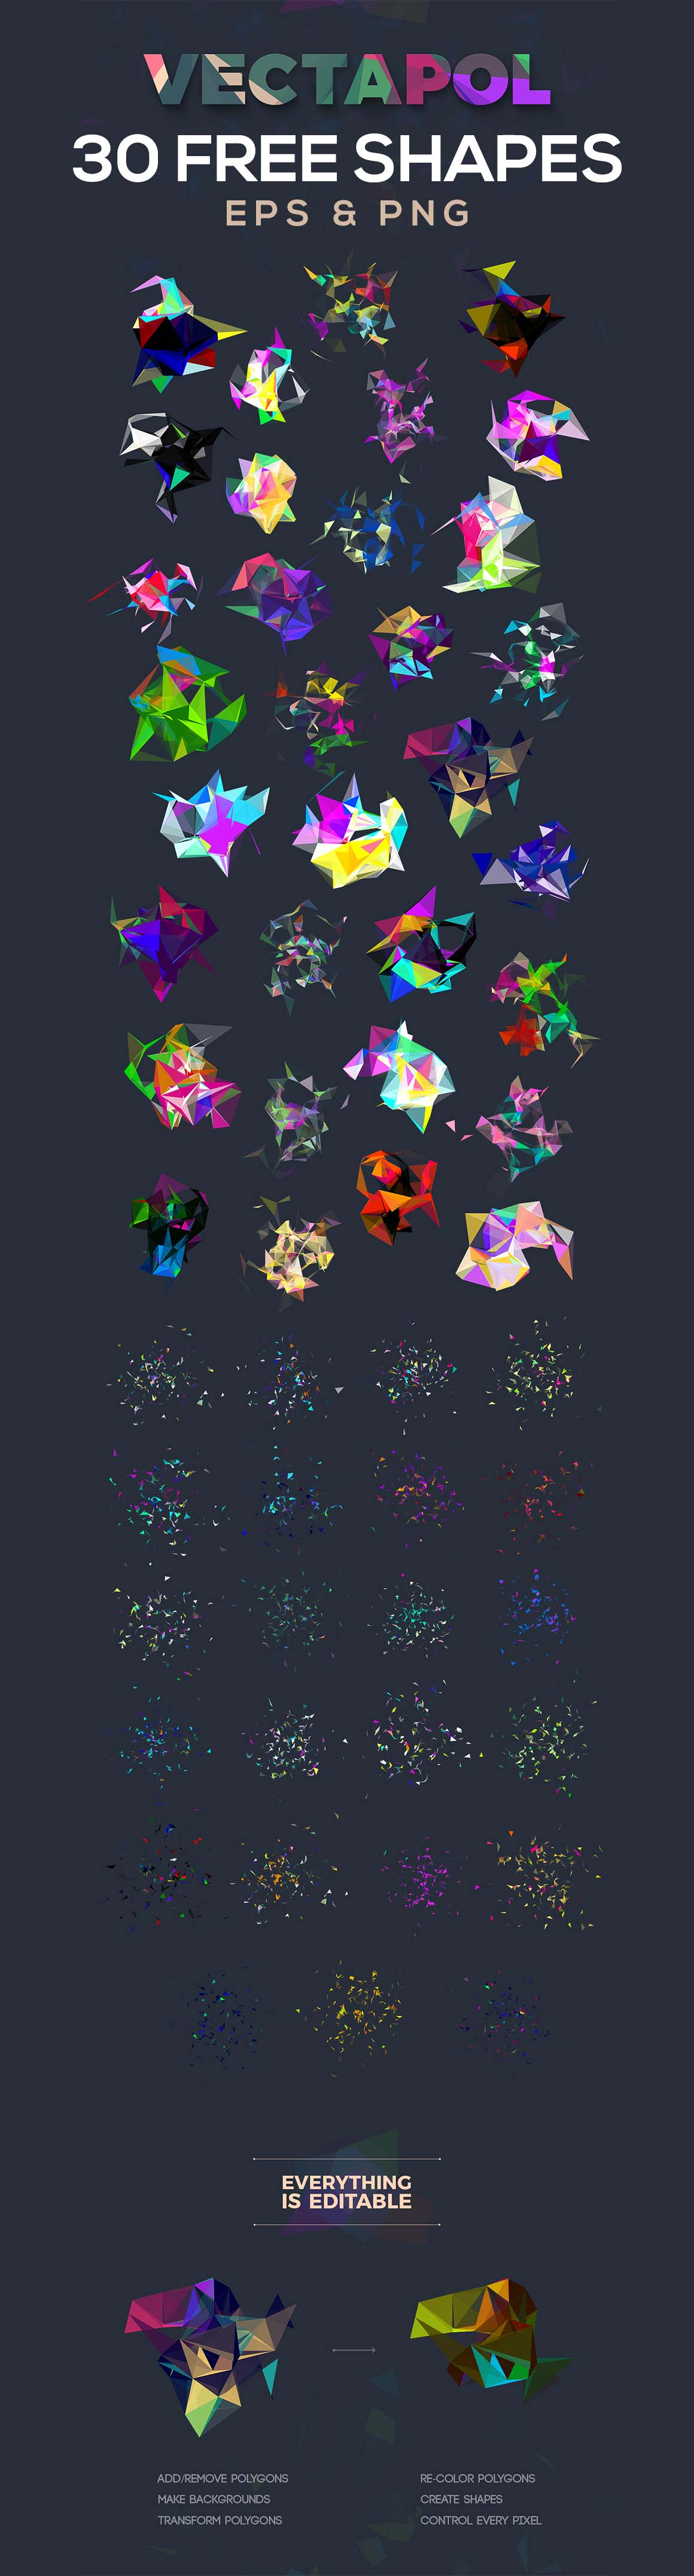 30FreeVectorPolygons2